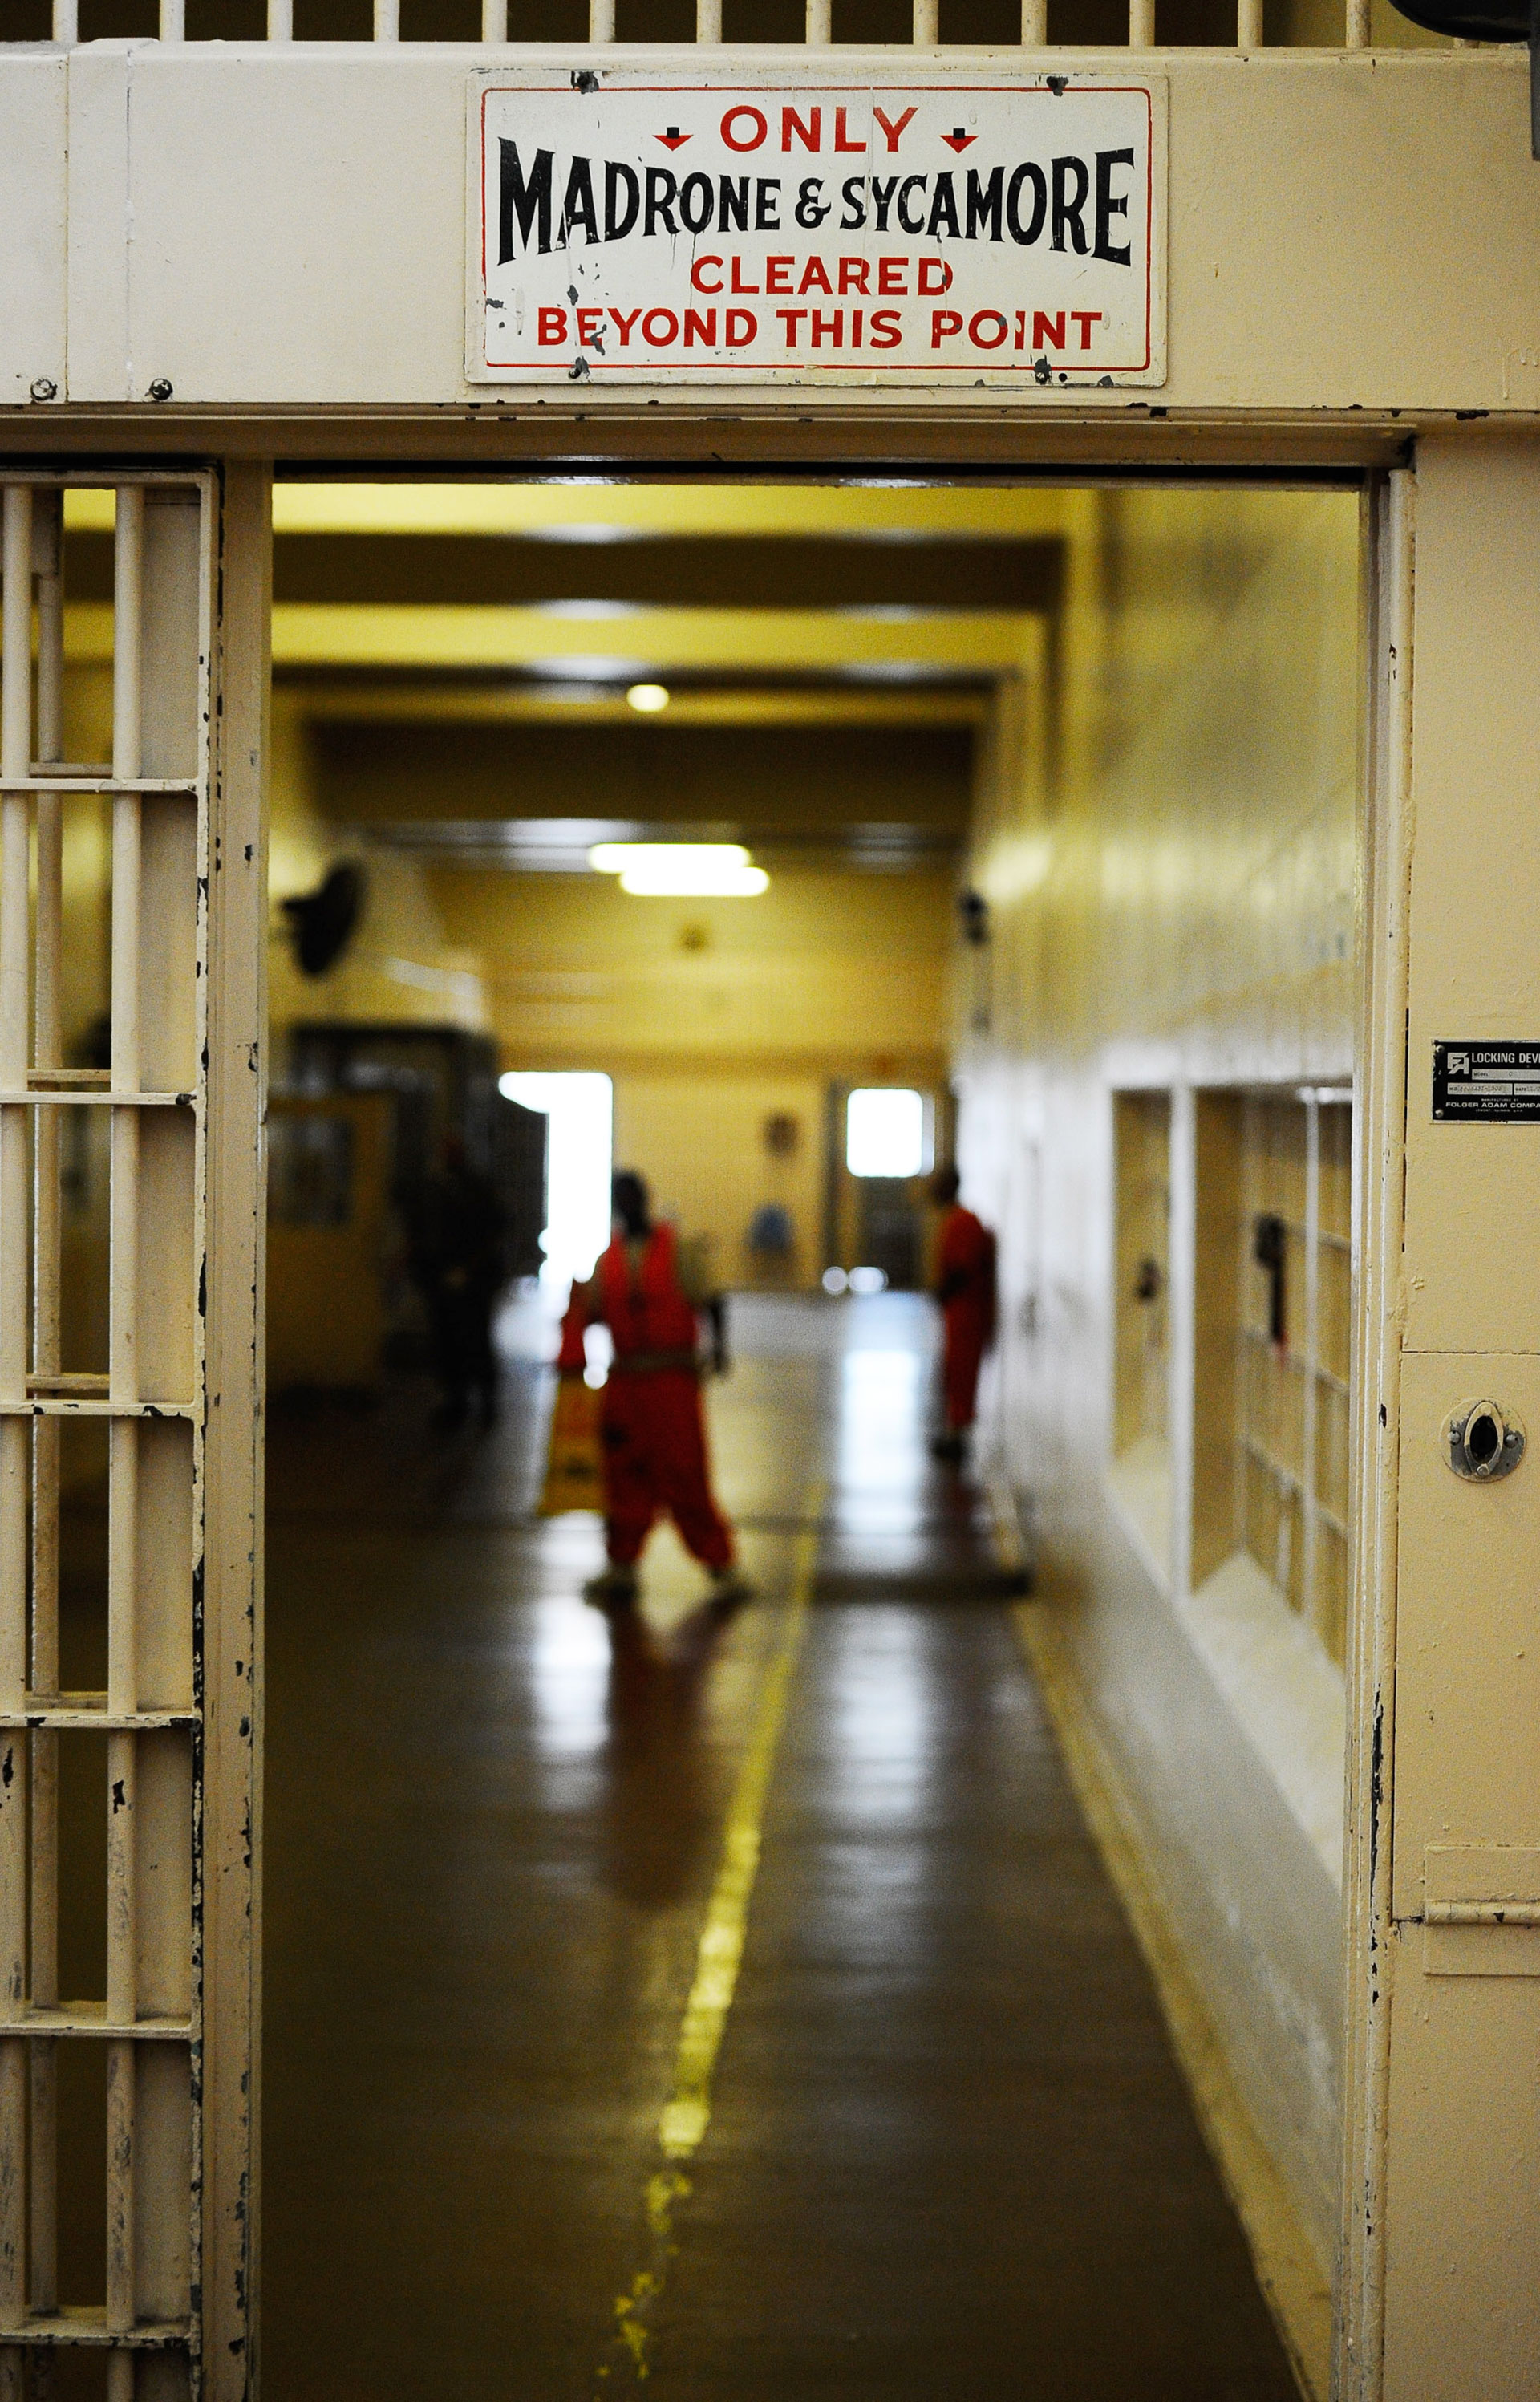 Inmates at Chino State Prison walk the hallway.